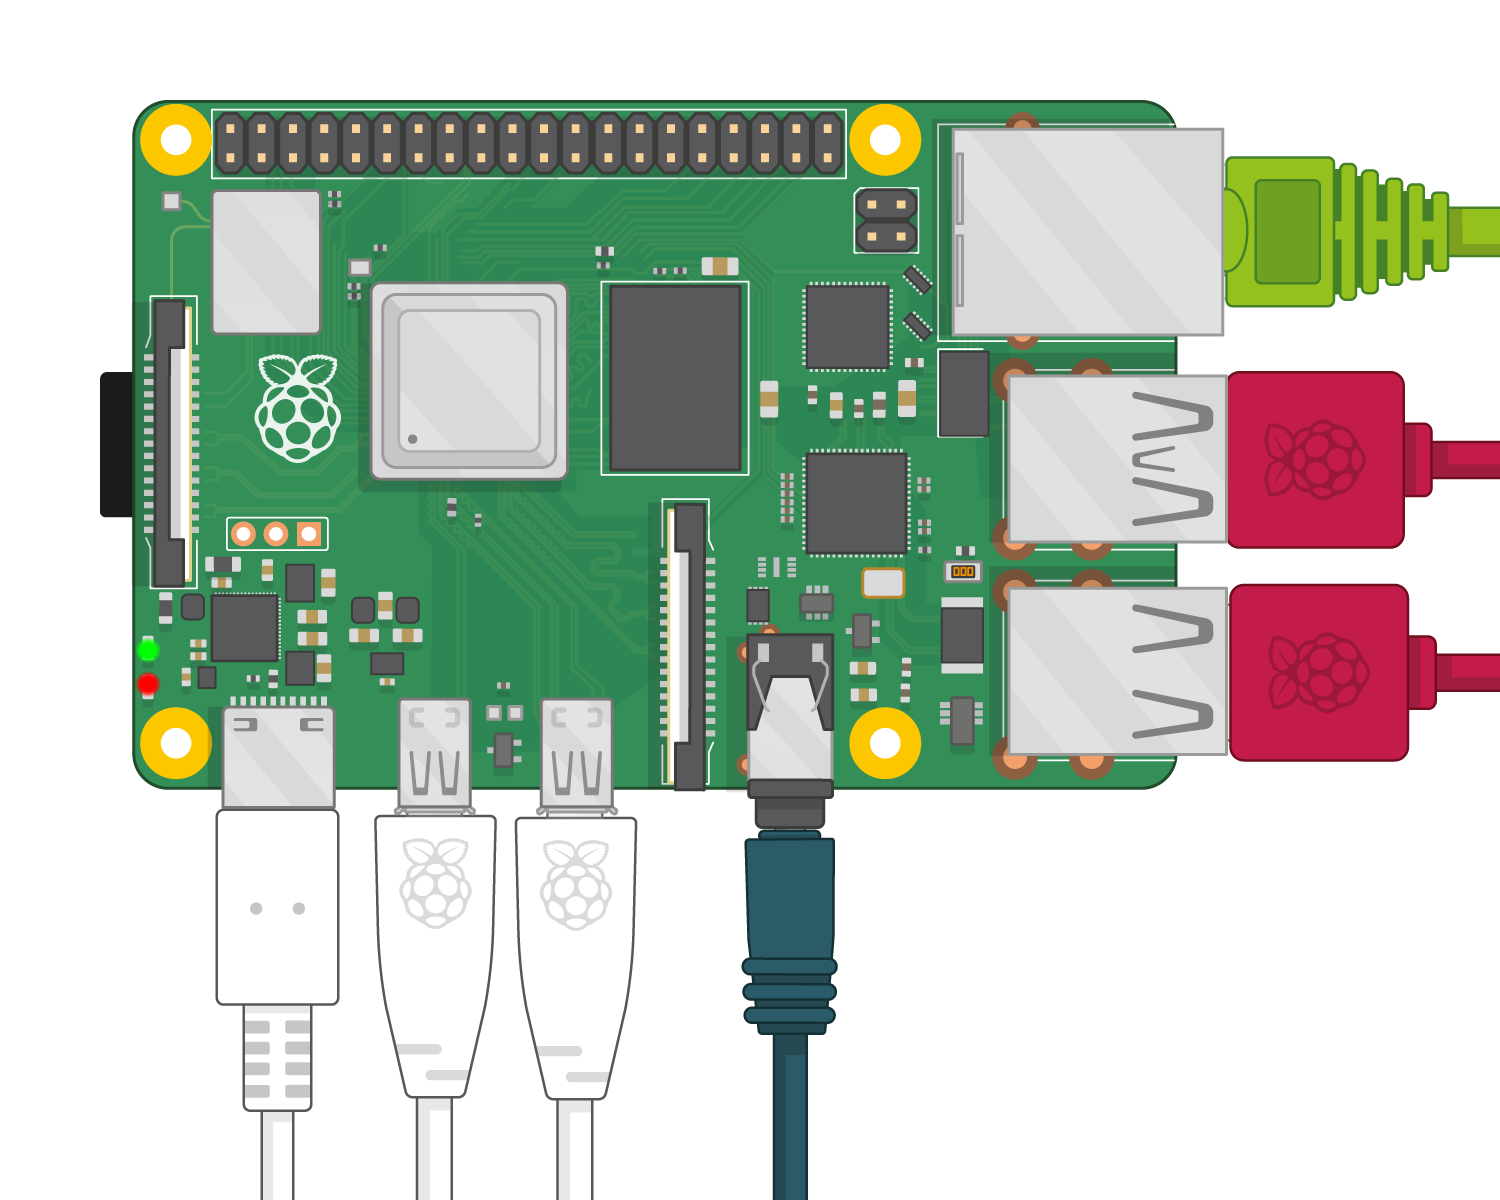 A Raspberry Pi 4, plugged in and ready to use